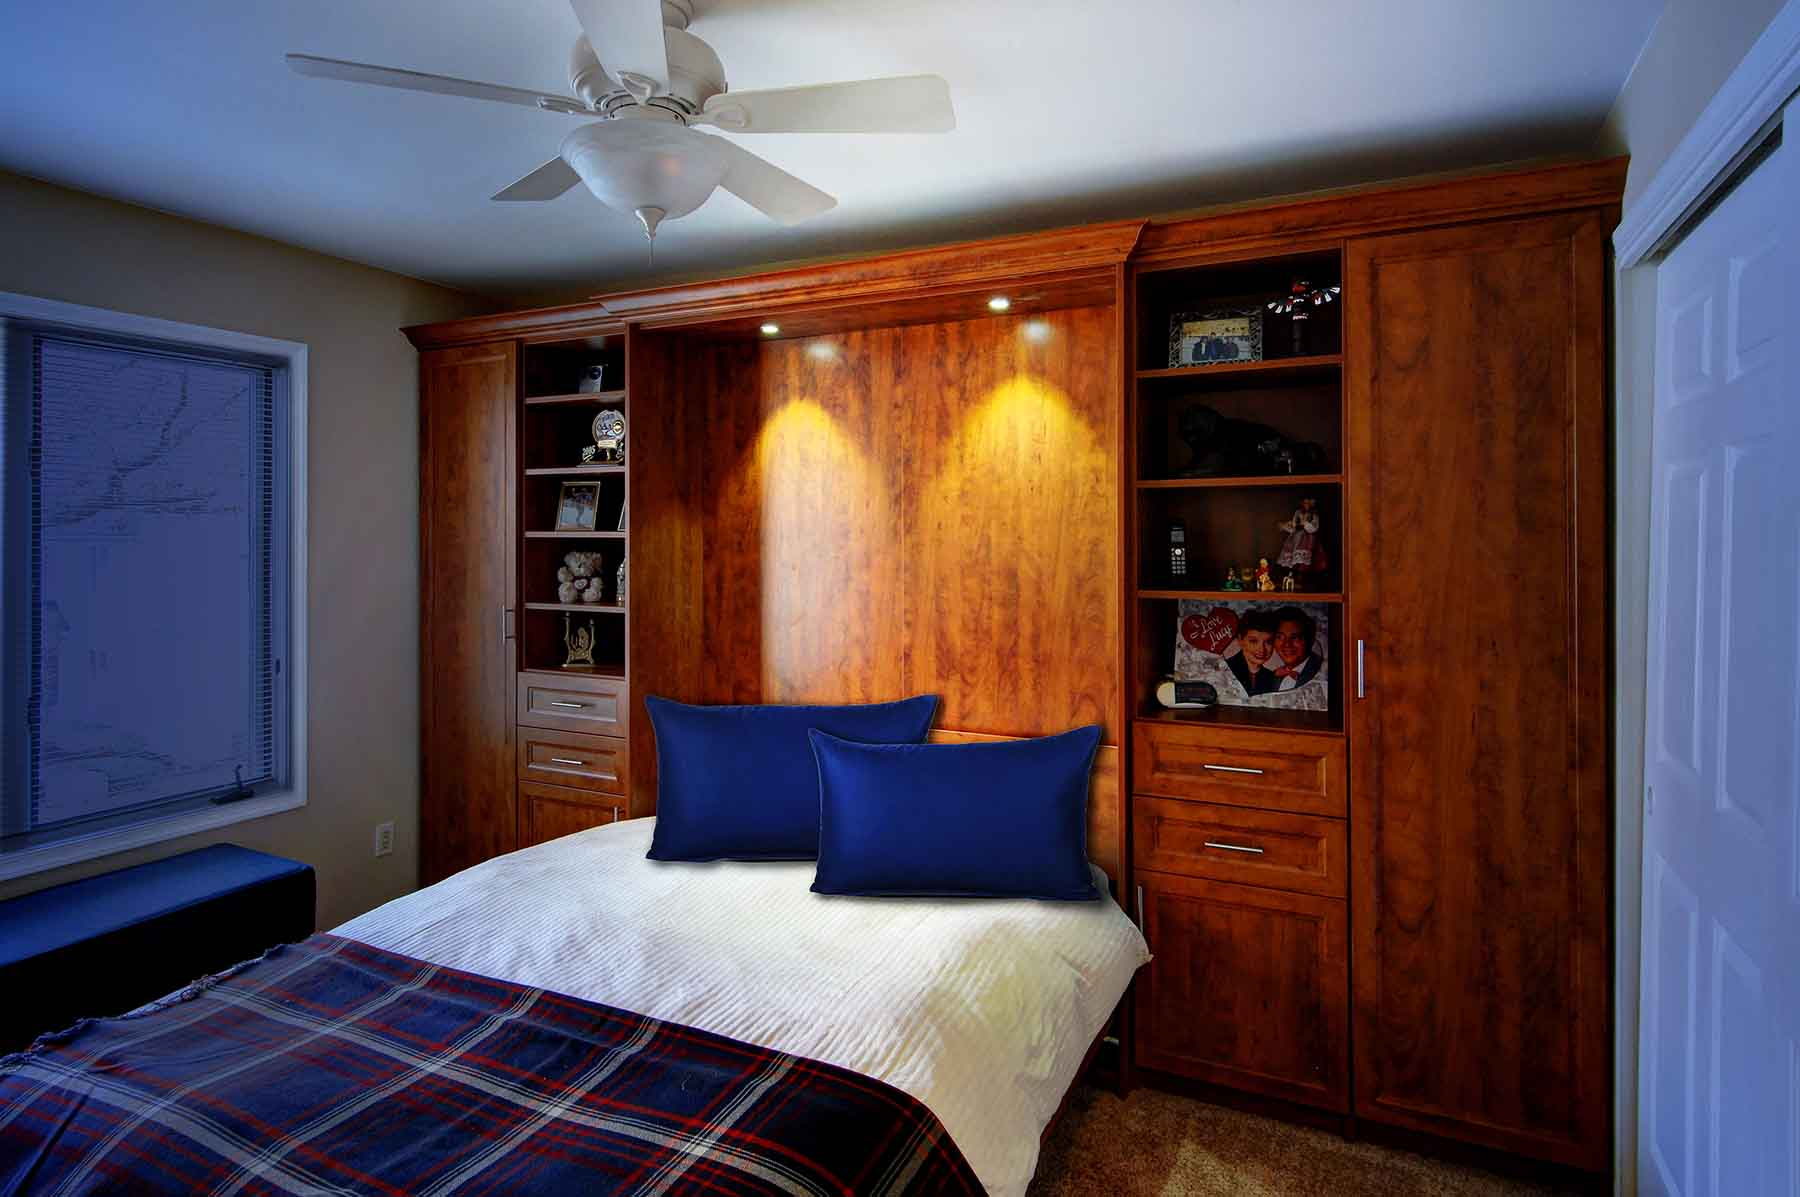 Murphy Beds: A Summer Guest Room in Disguise